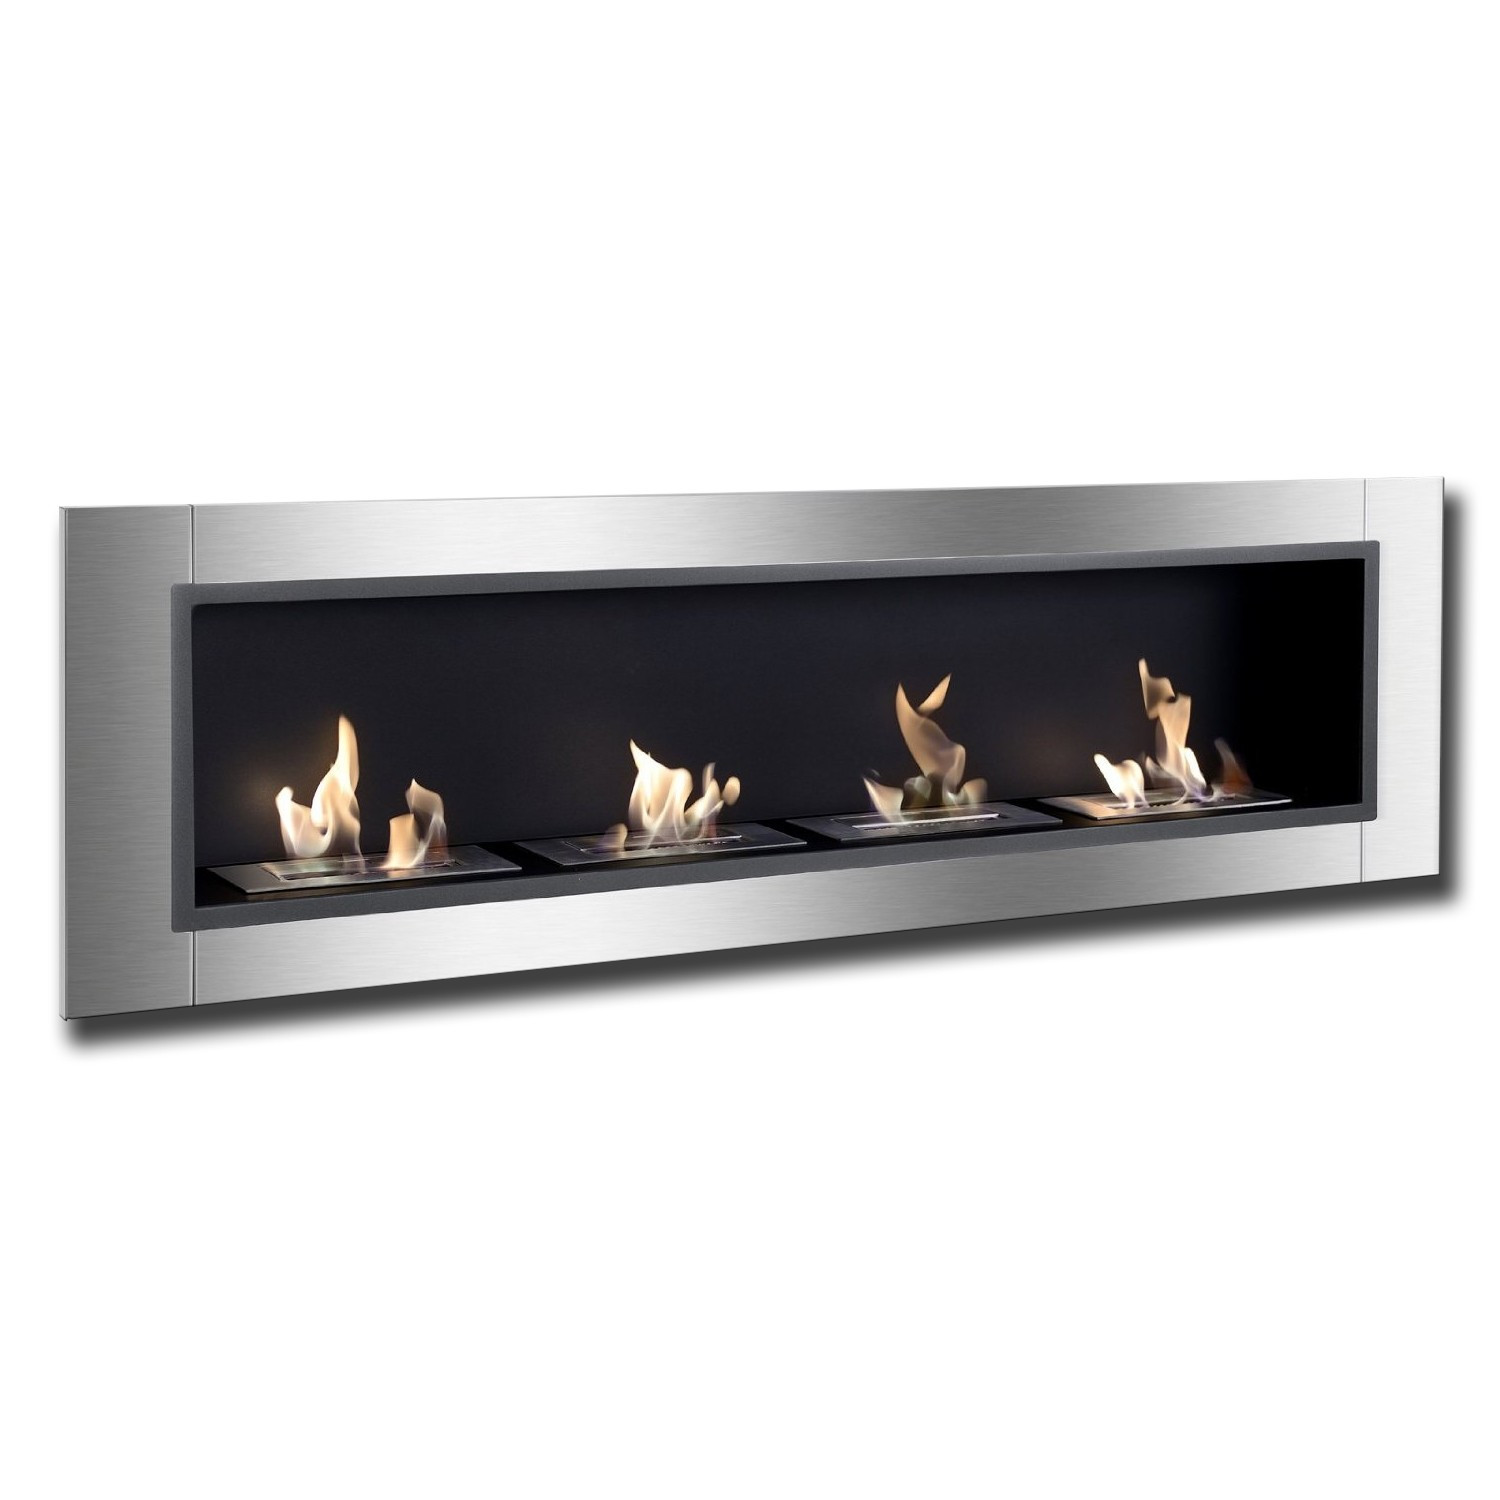 Natural gas wall mount fireplaces -  67 Ignis Accalia Wall Mounted Recessed Ventless Ethanol Fireplace